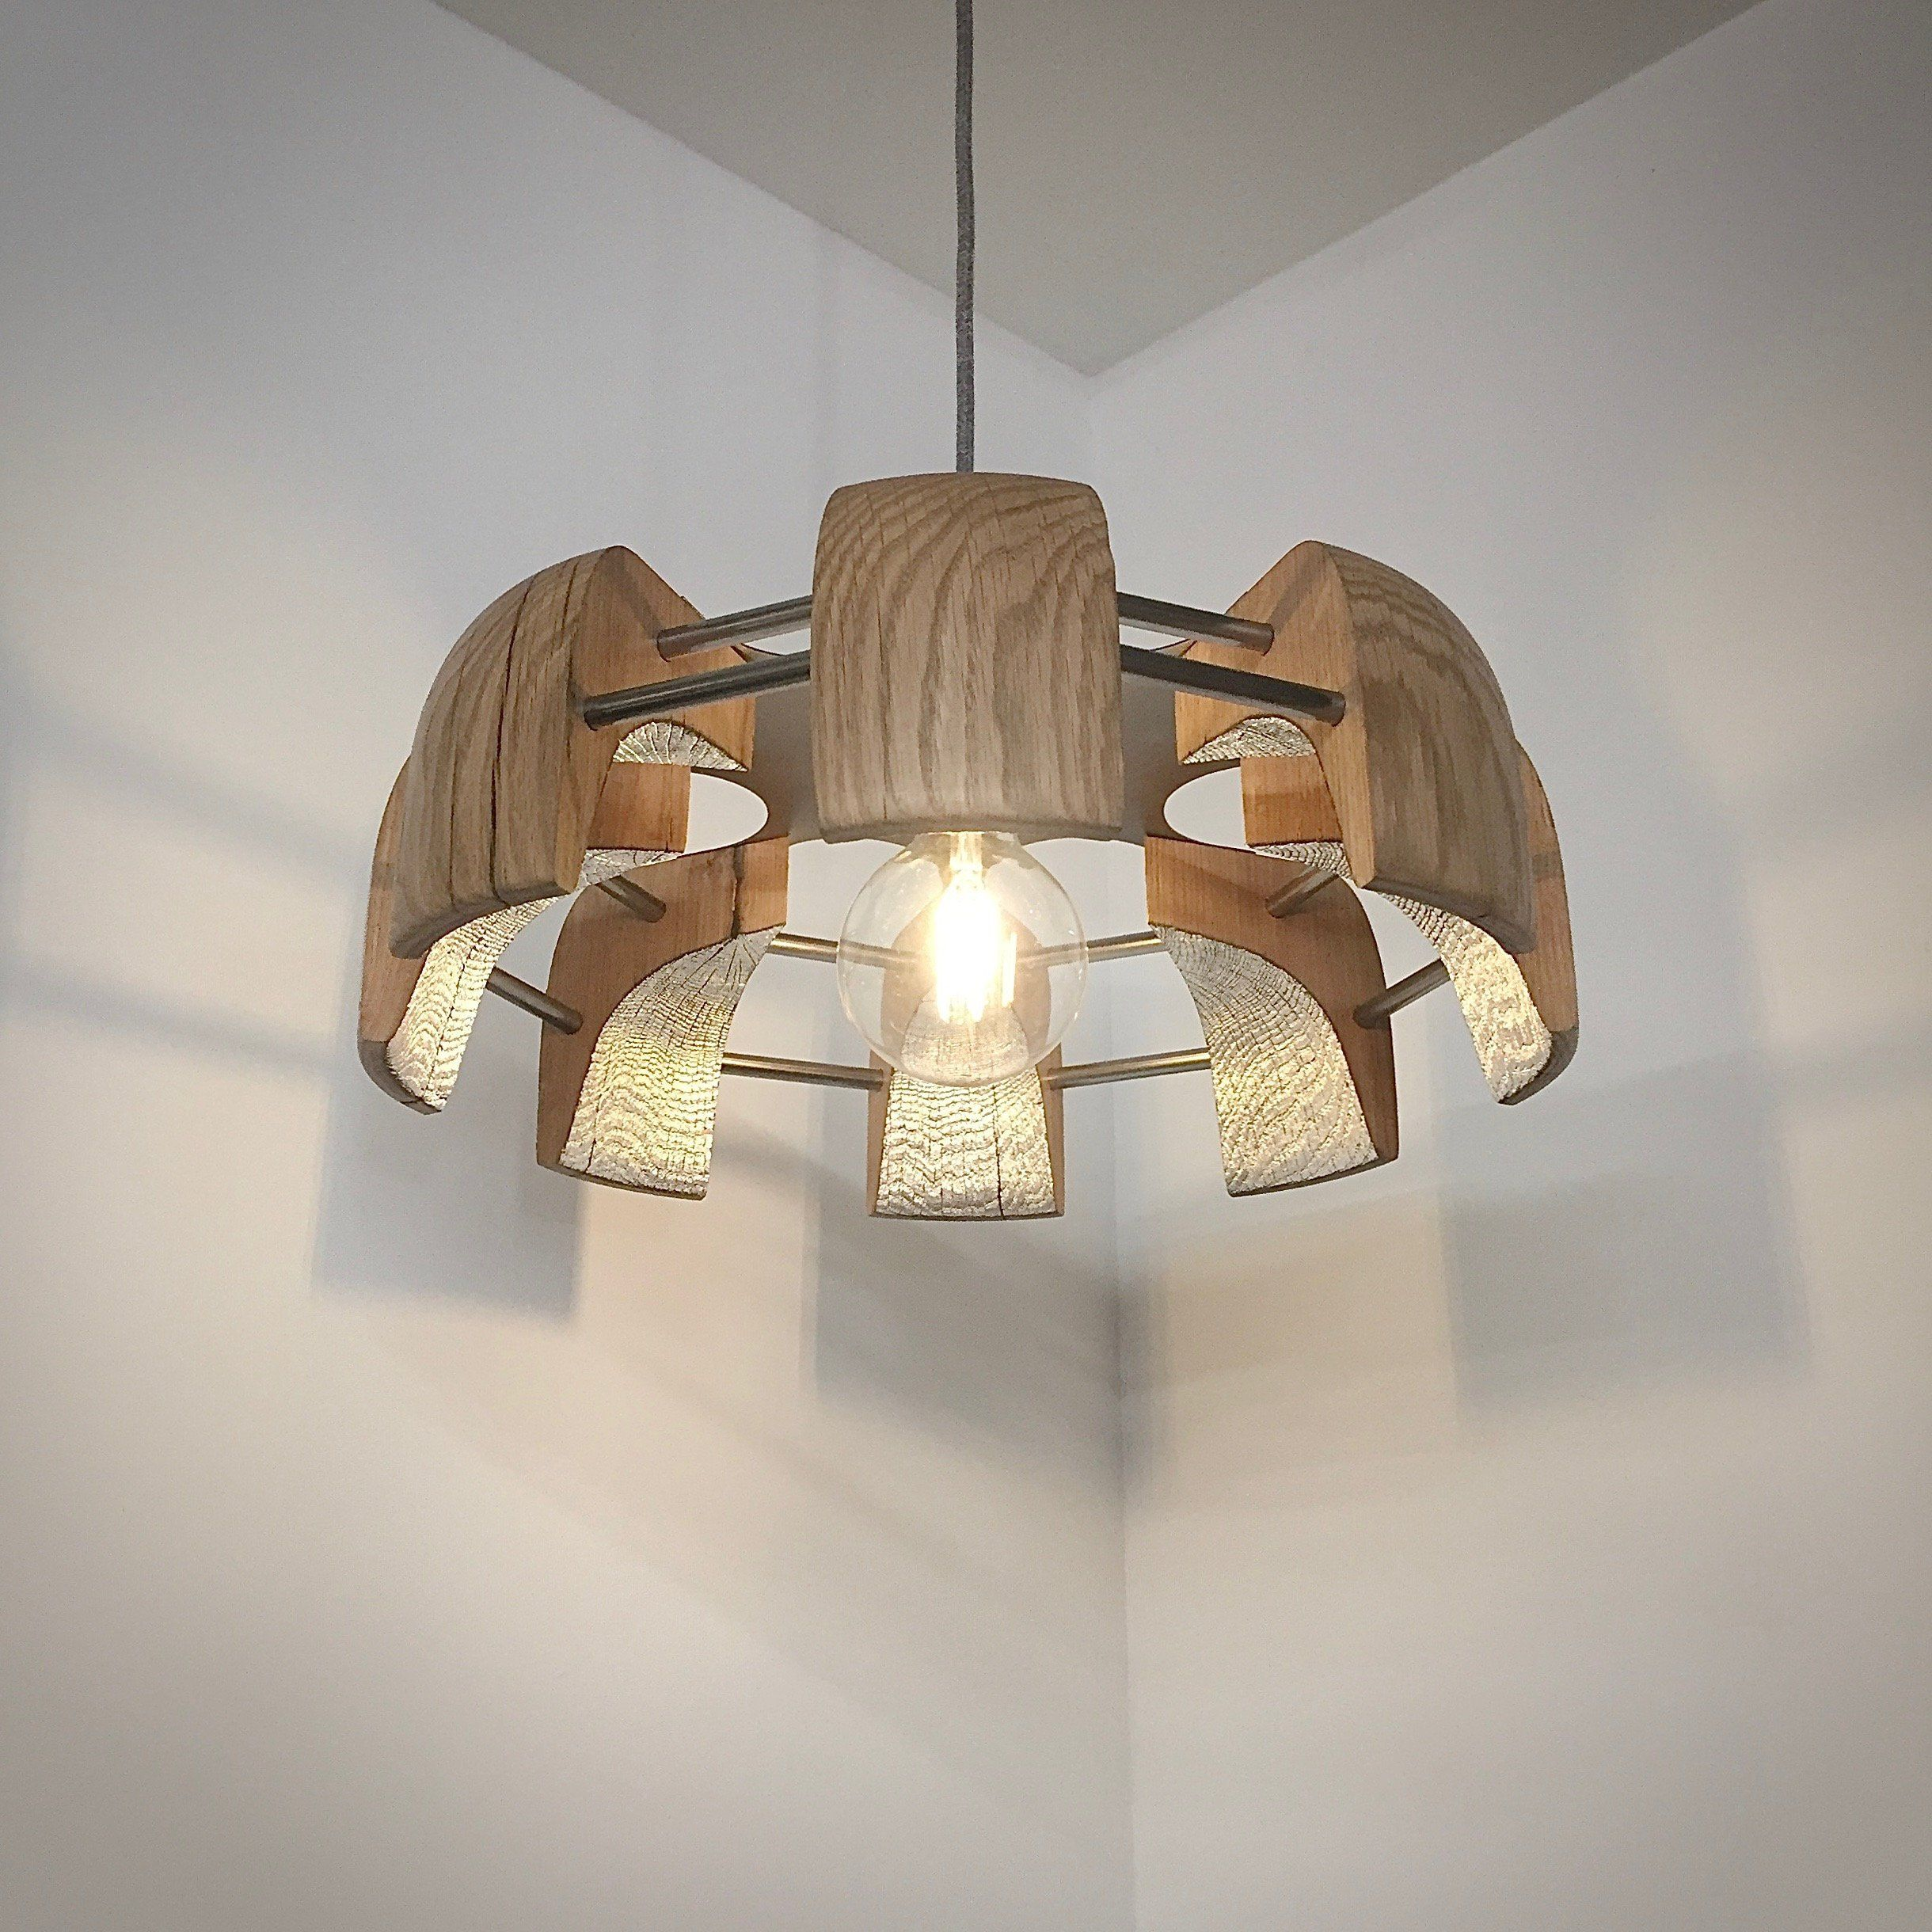 Starlight Piece Of Eight Deco Large Hand Crafted Etsy Pendant Light Fitting Ceiling Rose Pendant Lamp